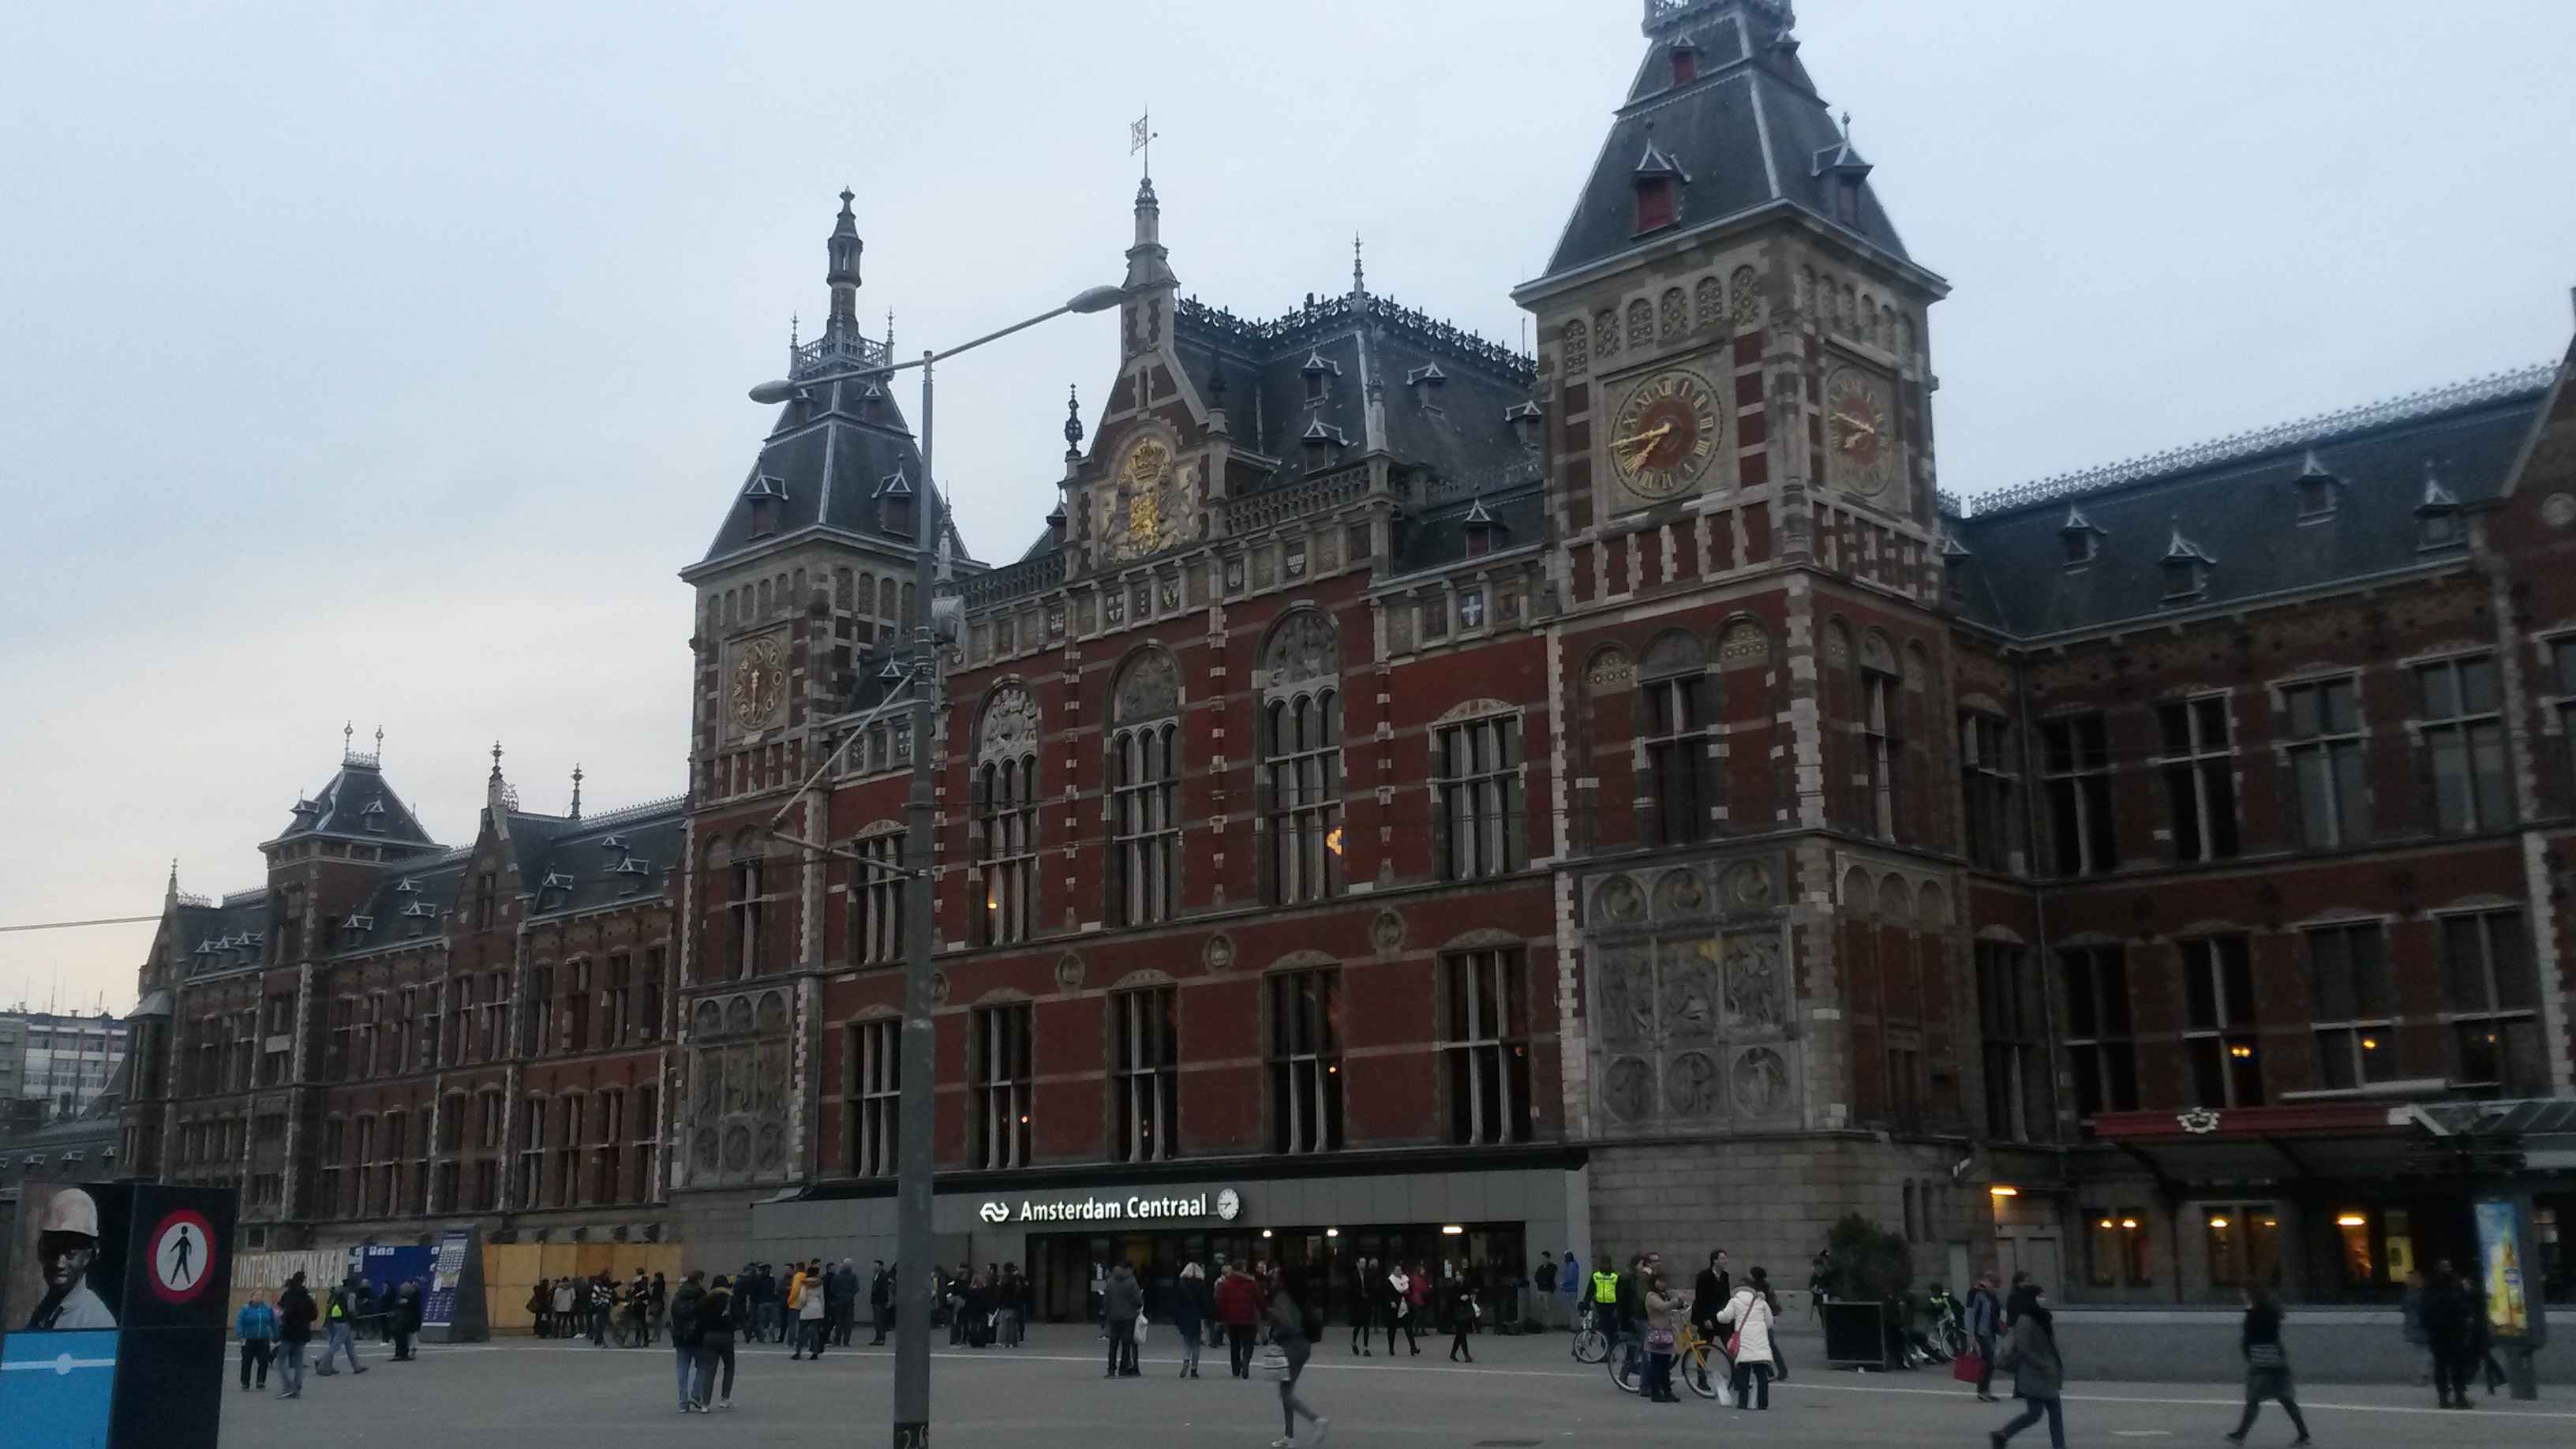 Centraal Station in Amsterdam